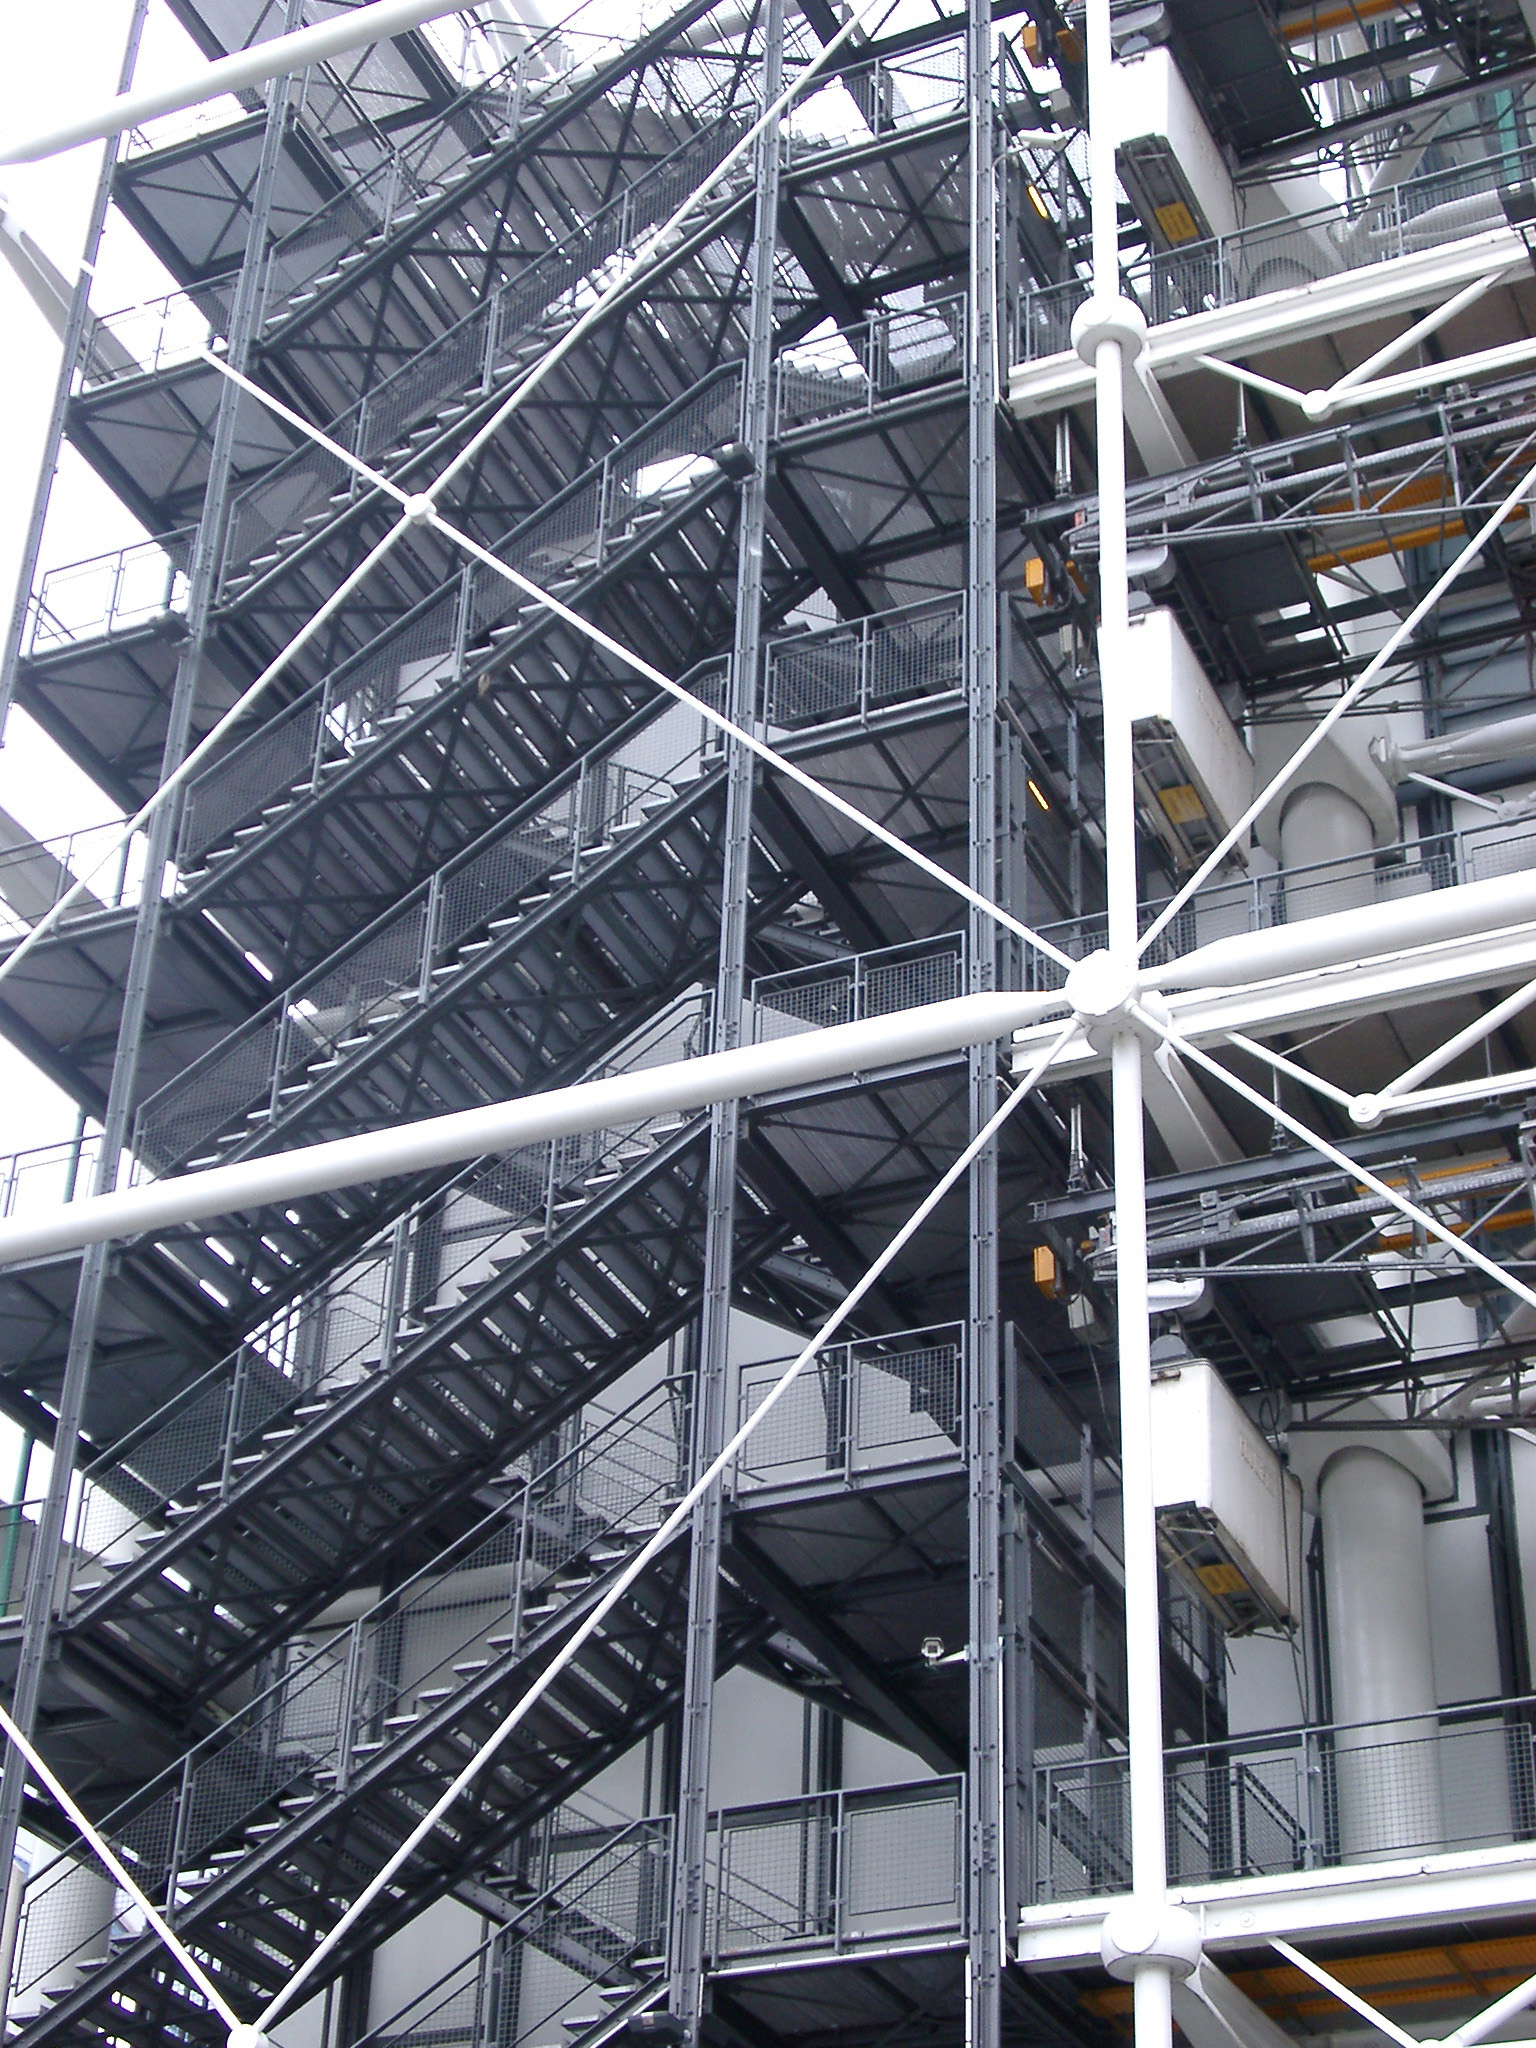 Free Stock photo of Exterior of the Georges Pompidou ...